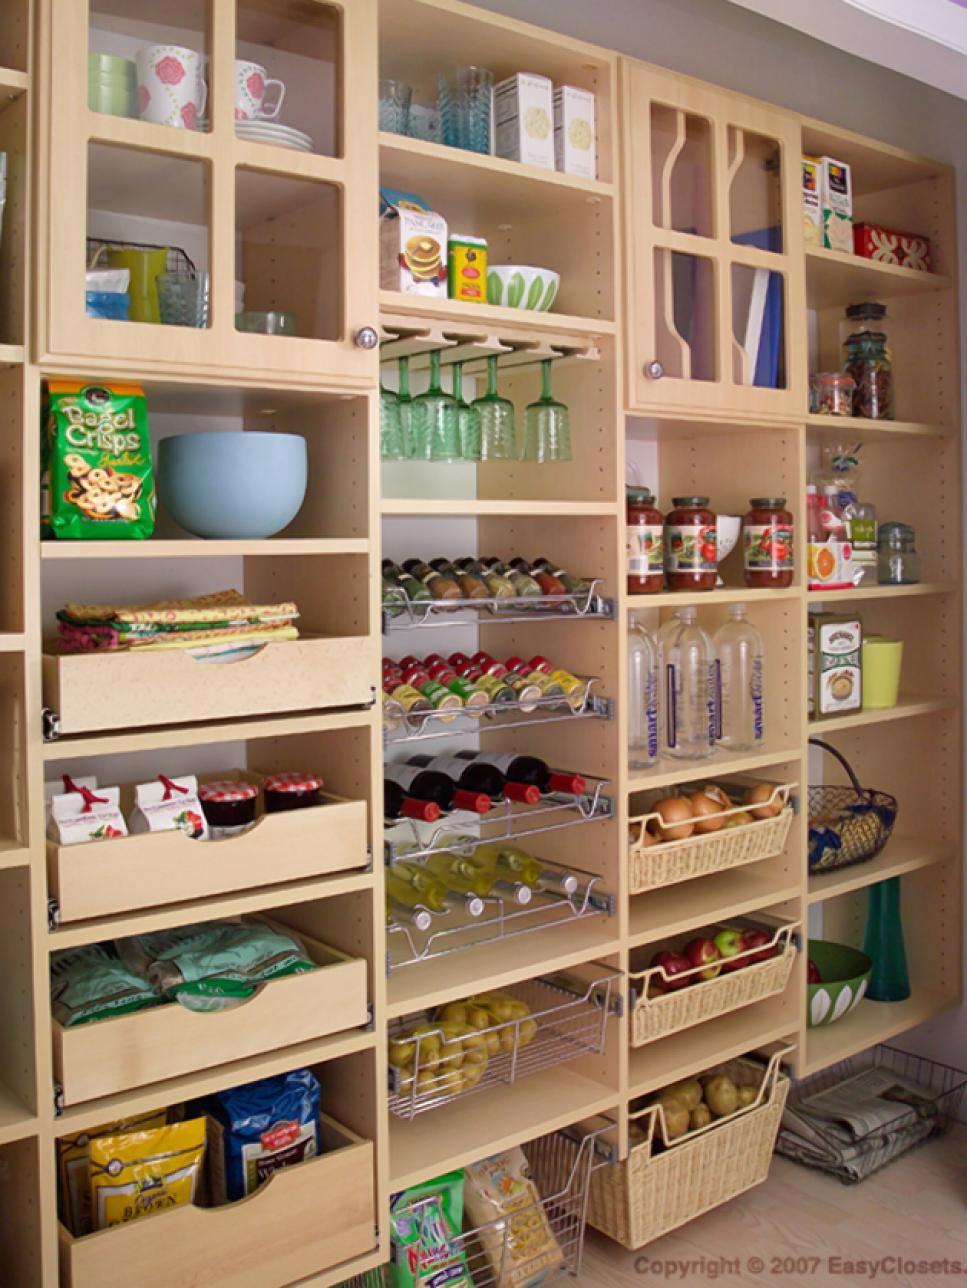 Organization and design ideas for storage in the kitchen pantry diy - Kitchen diy ideas ...